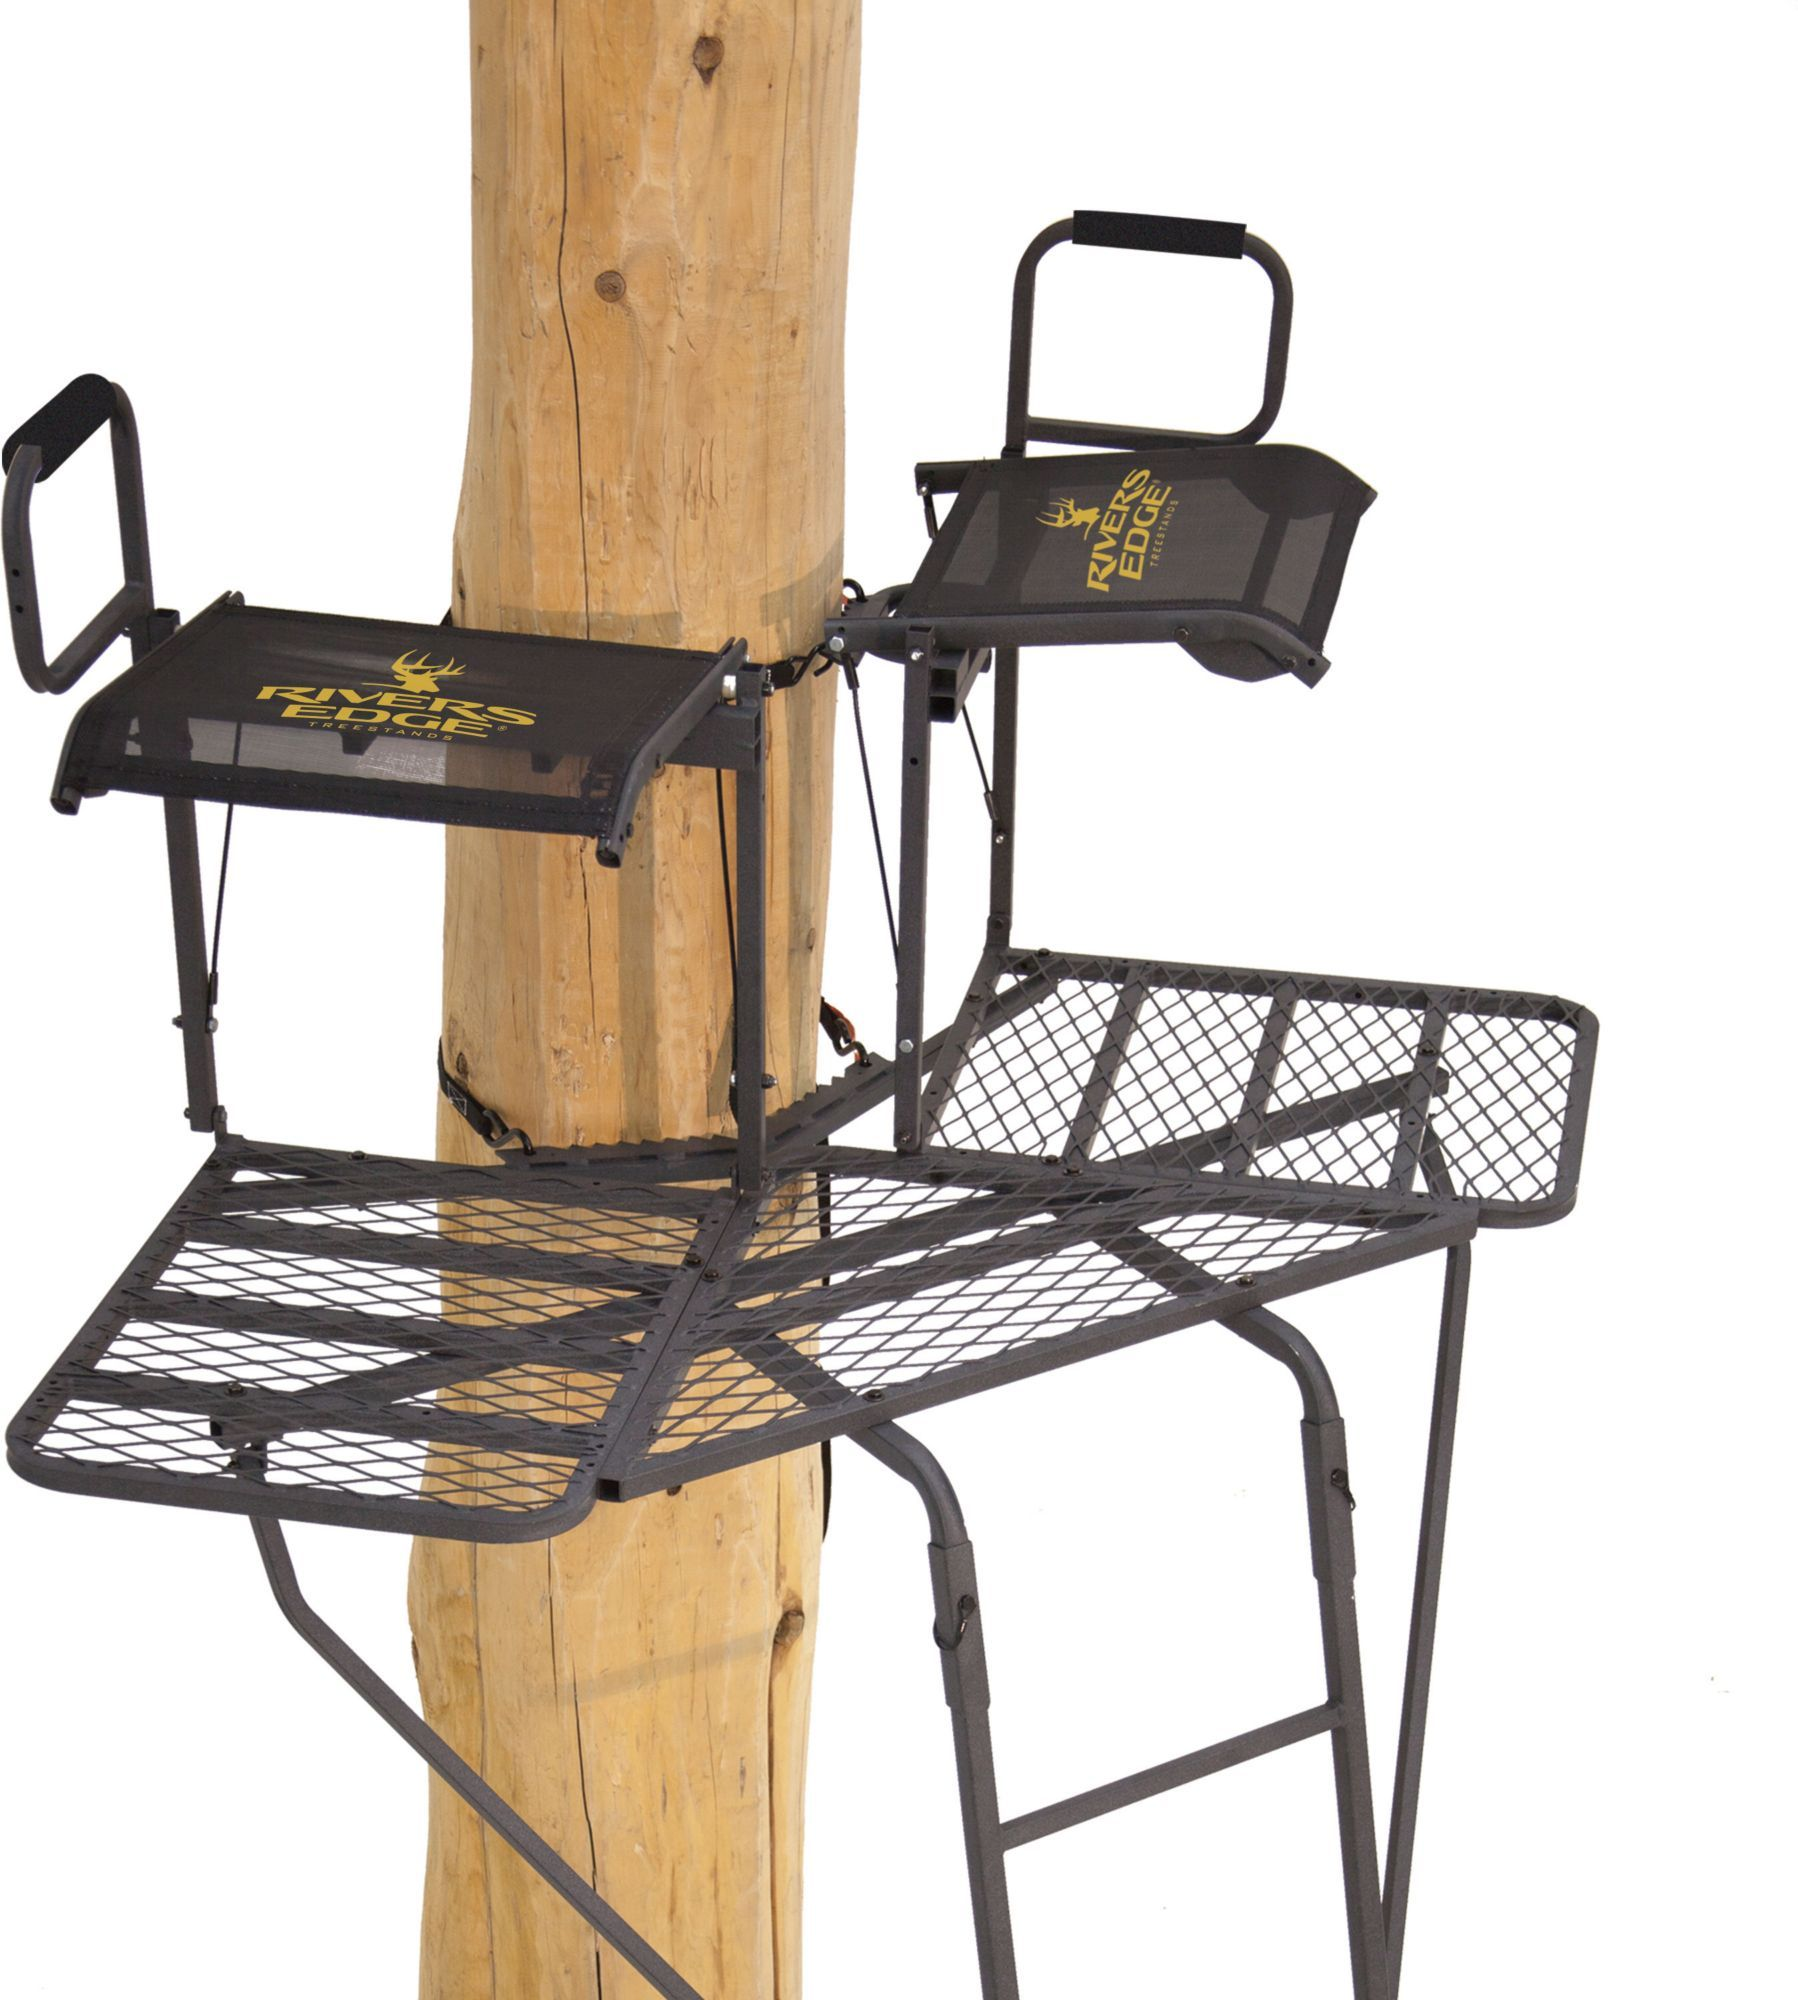 6ec601a450a Rivers Edge Bowman 2-Person 19  Ladder Stand